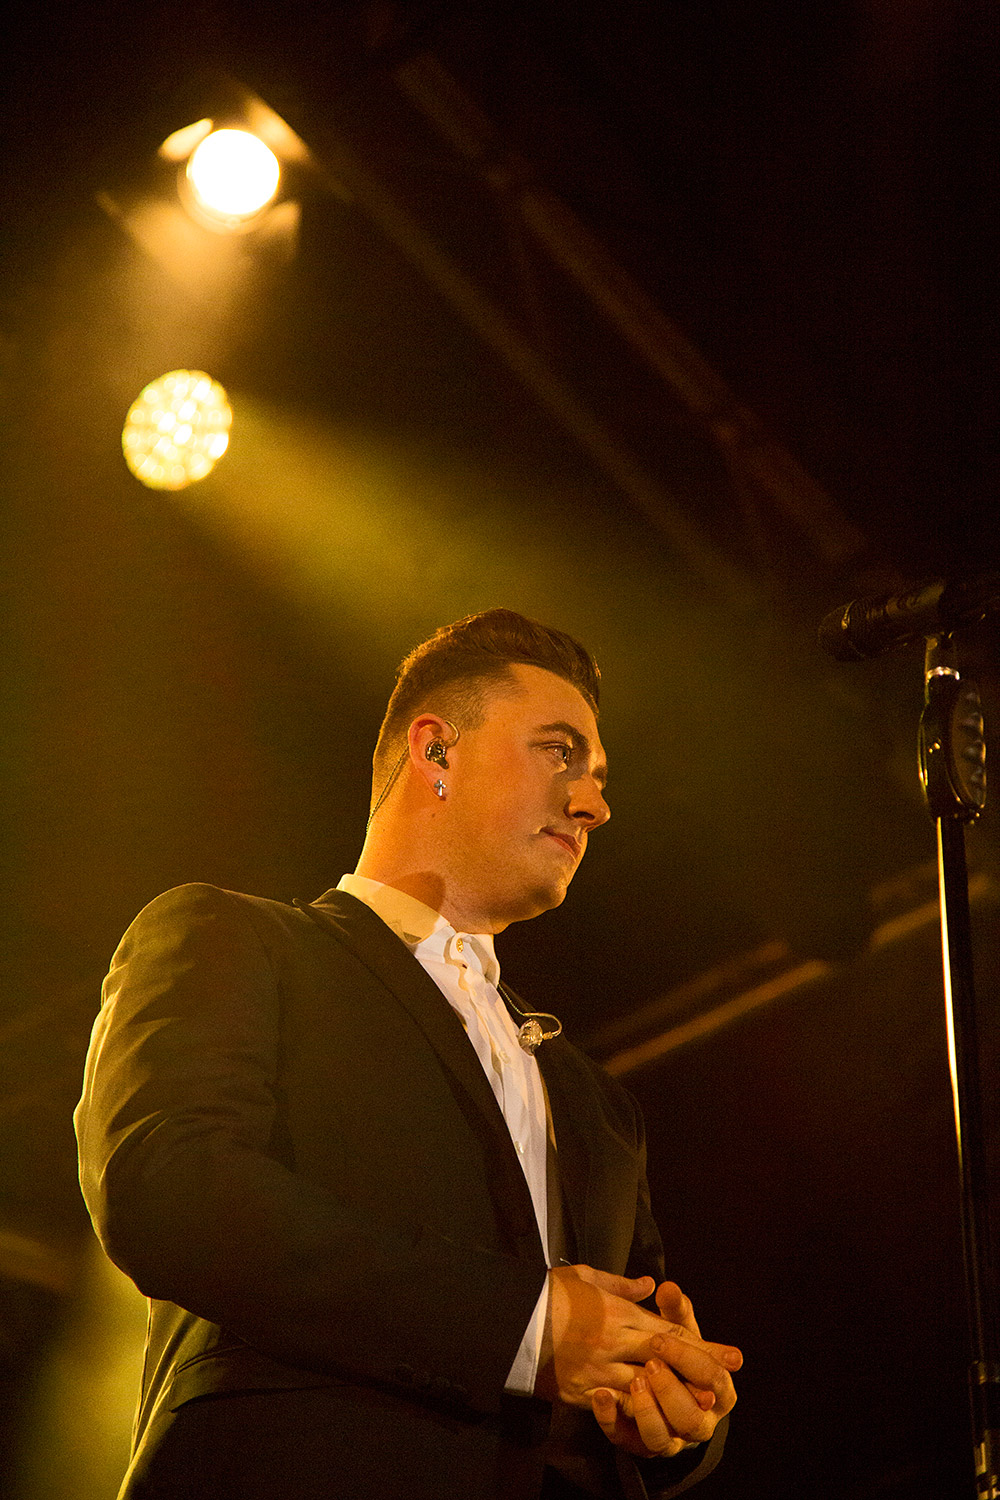 Sam Smith @ Somerset House, London 18/07/14